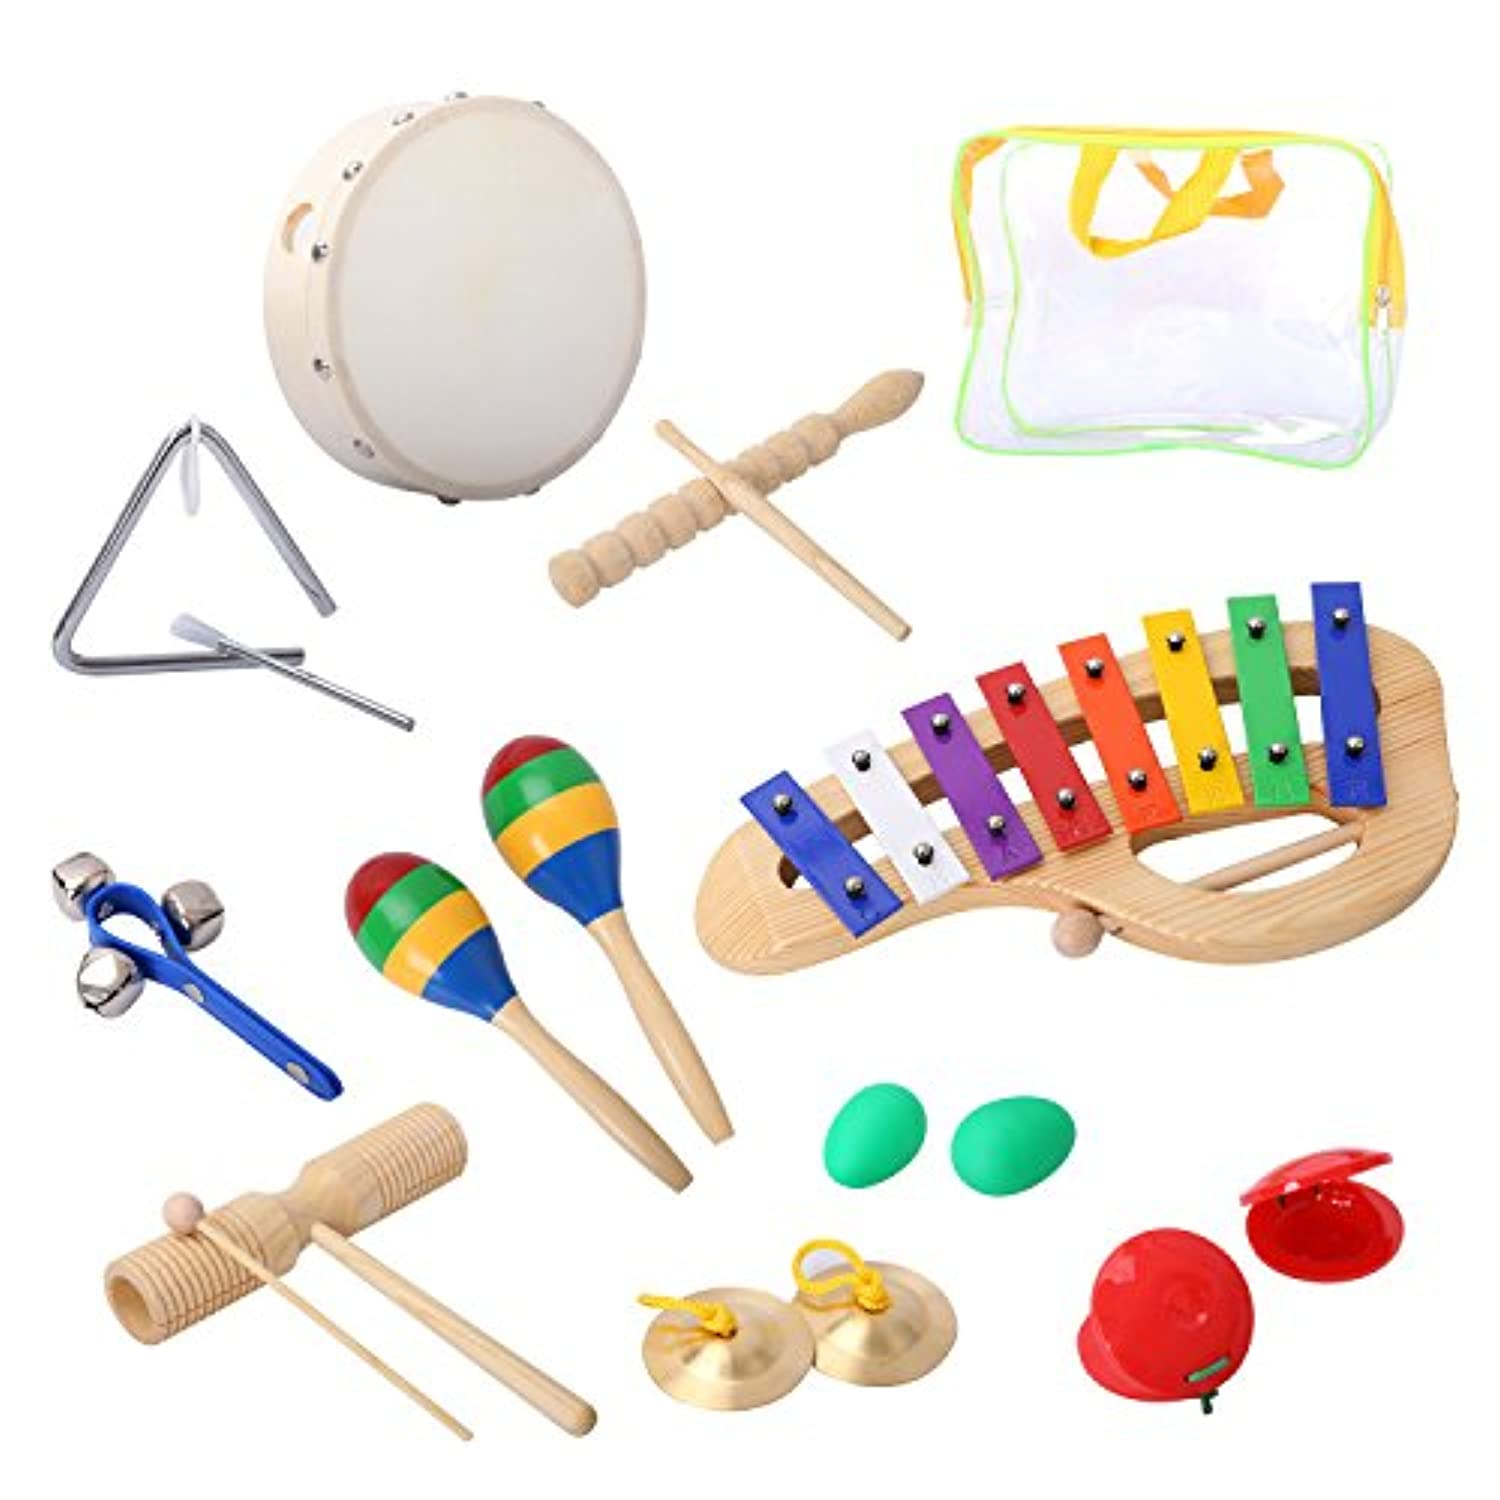 (CY0037) - CAHAYA Percussion Set Musical Instruments and Enlighten Toys Kit Tambourine Bells Maracas Glockenspiel Castanets with Small Bag for Baby 10PCS